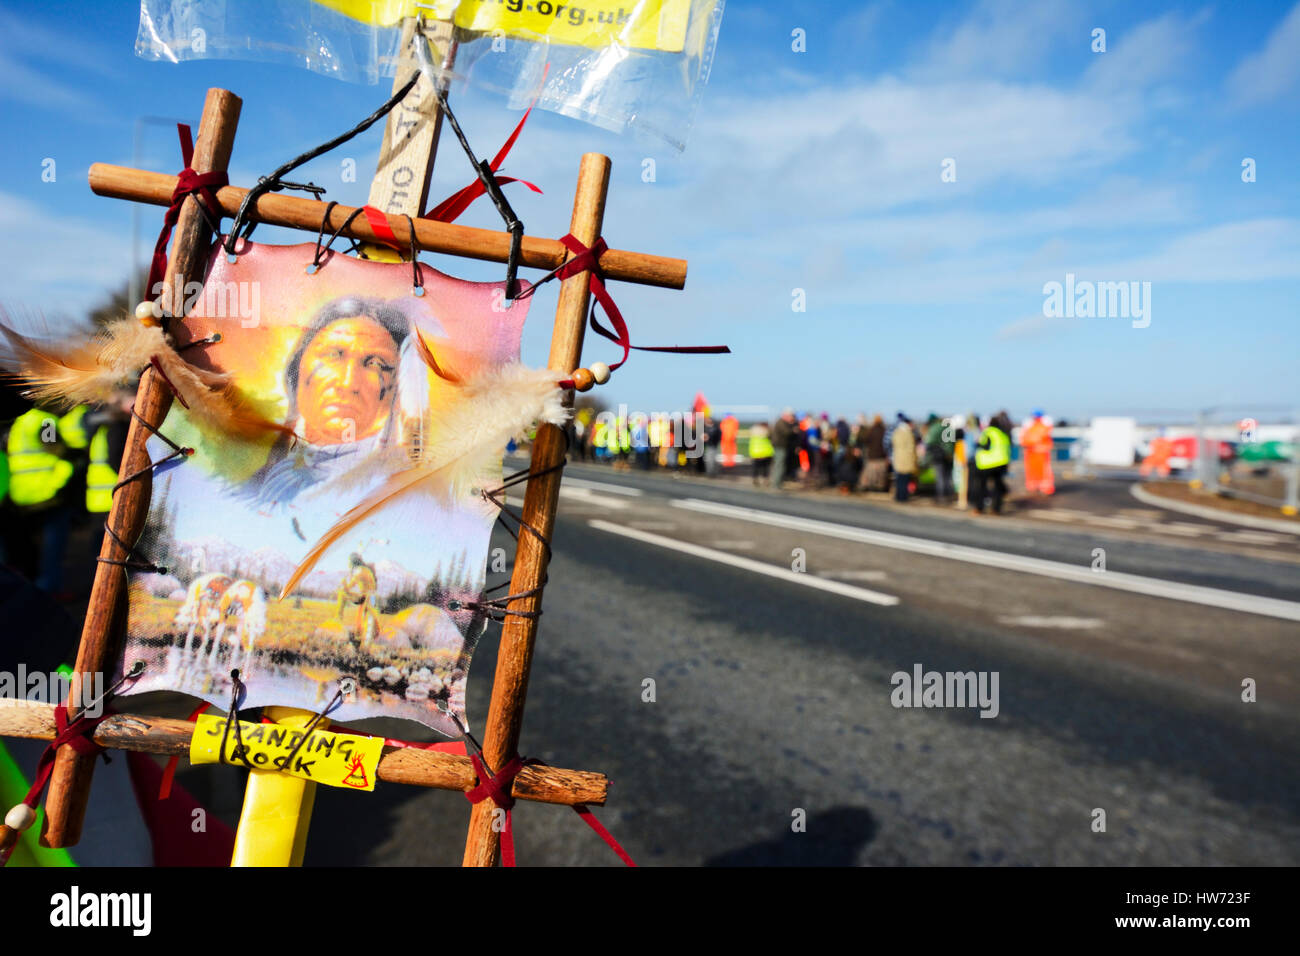 Anti-fracking protesters continue protesting each day at Cuadrillas contraversial exploratory shale gas drilling - Stock Image